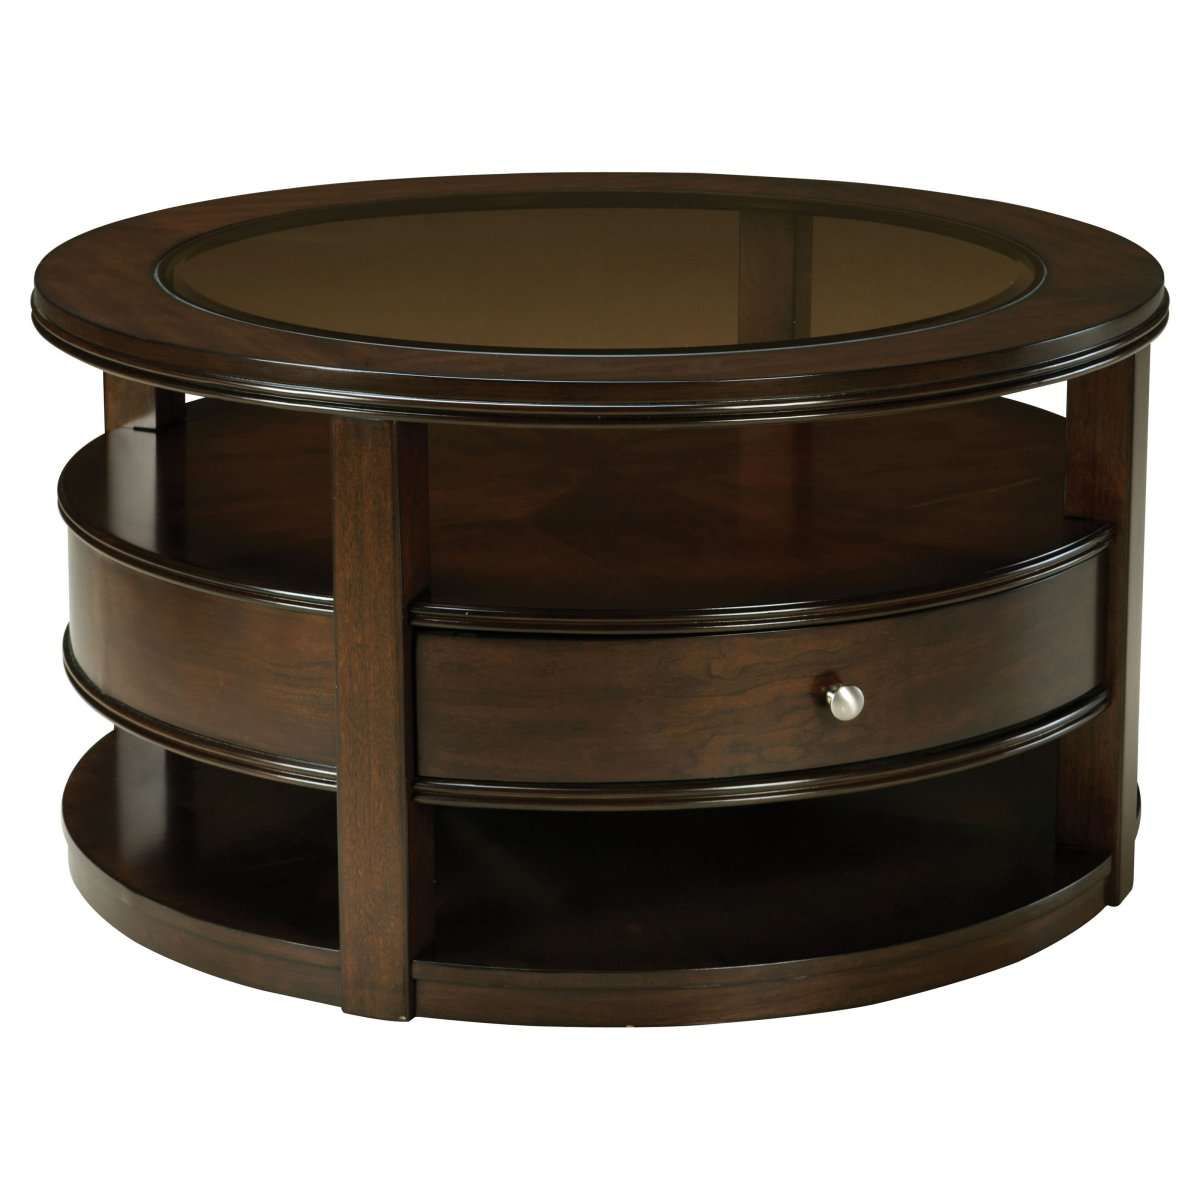 Round Coffee Table With Storage Awesome Round Coffee Tables With Storage Homesfeed